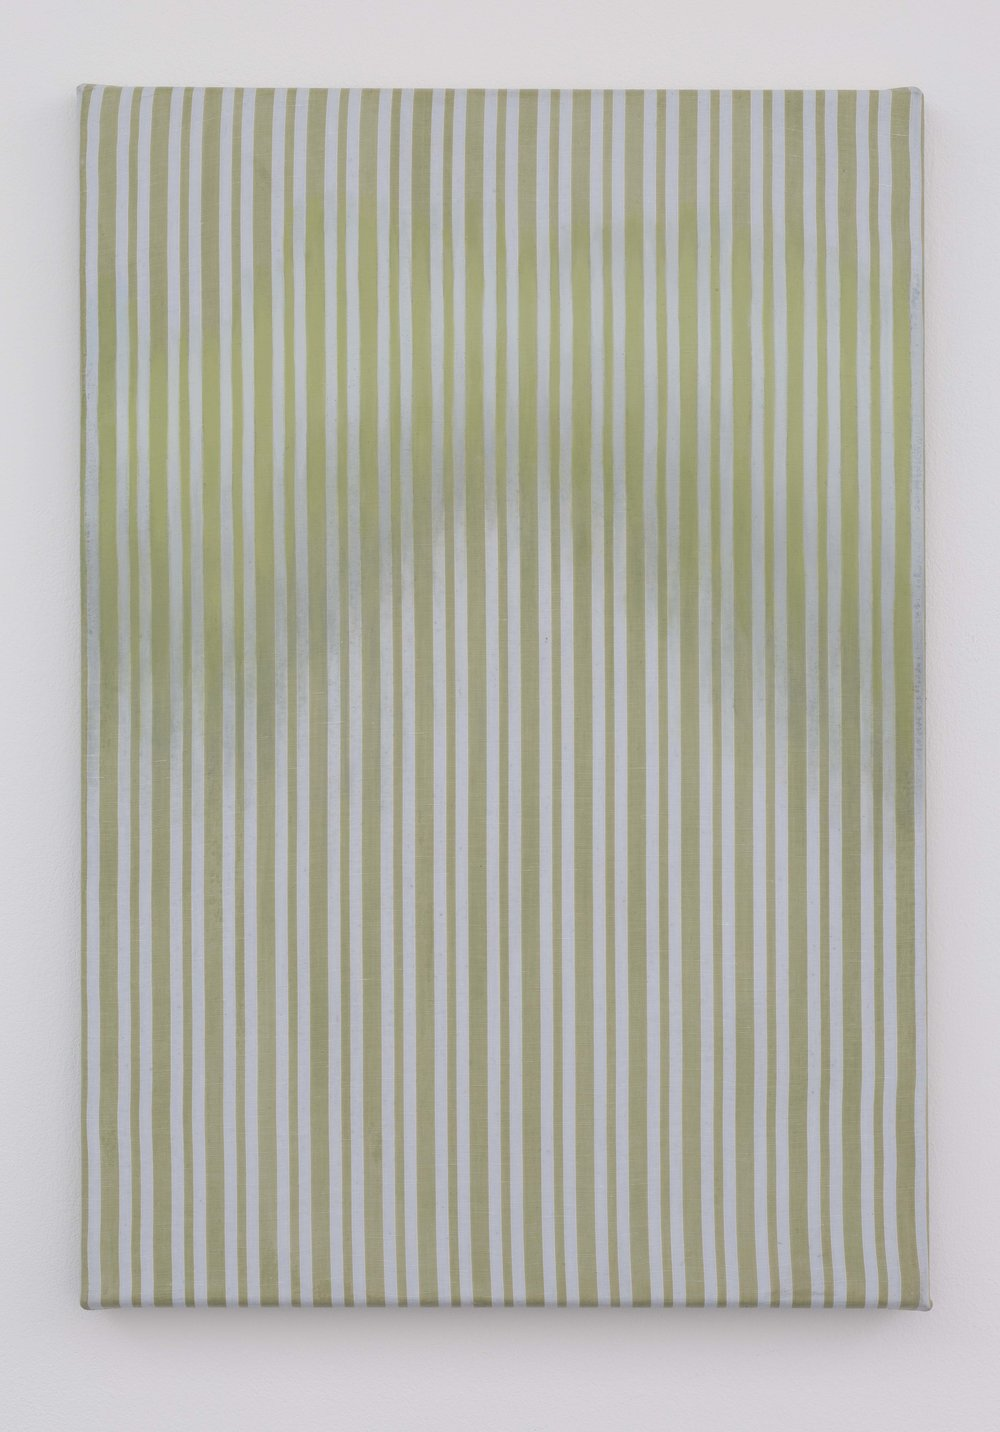 Across, Down   Oil and acrylic on striped polycotton  55 x 40cm  2017